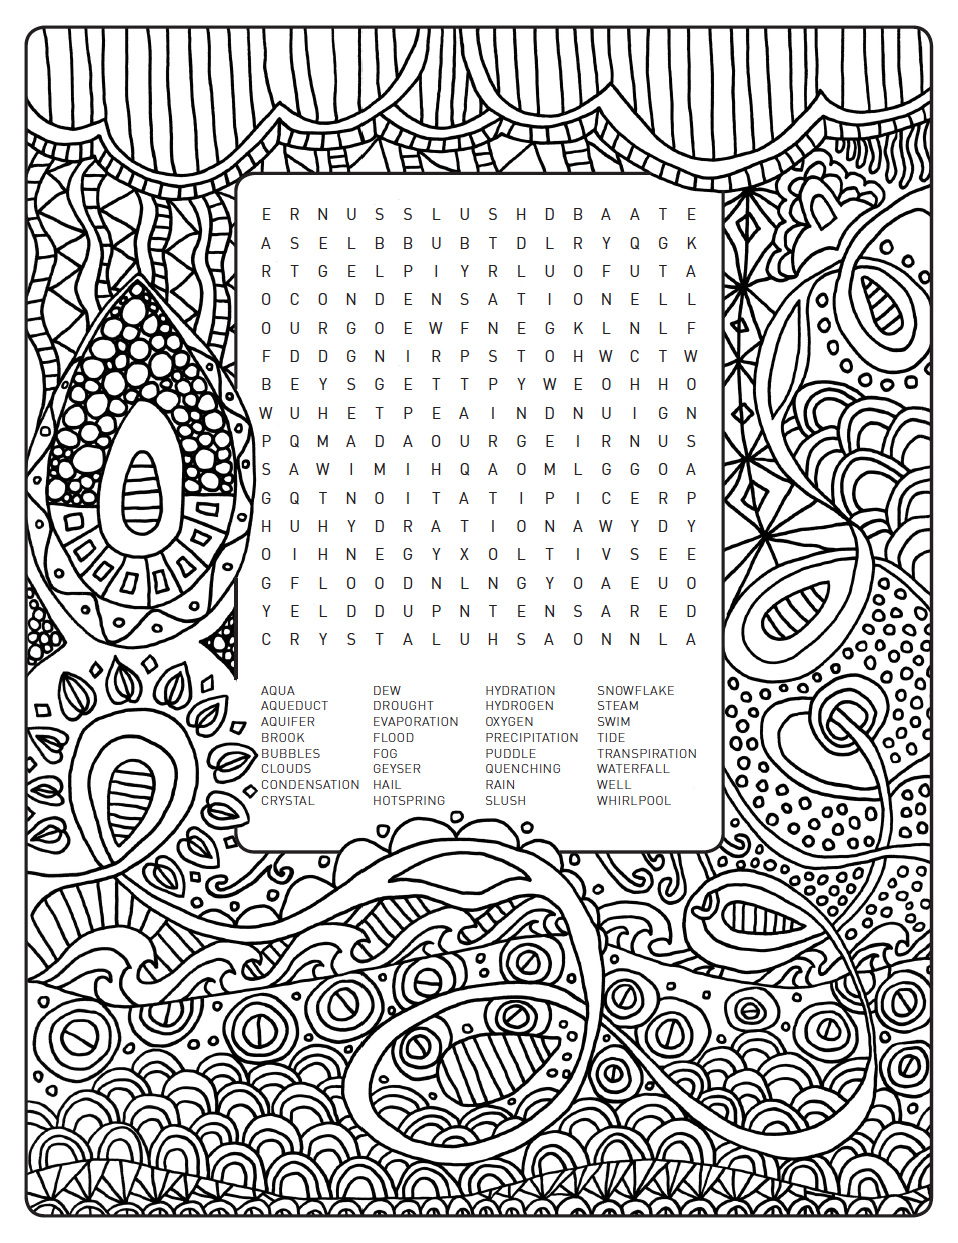 weelife word search colouring page world of water